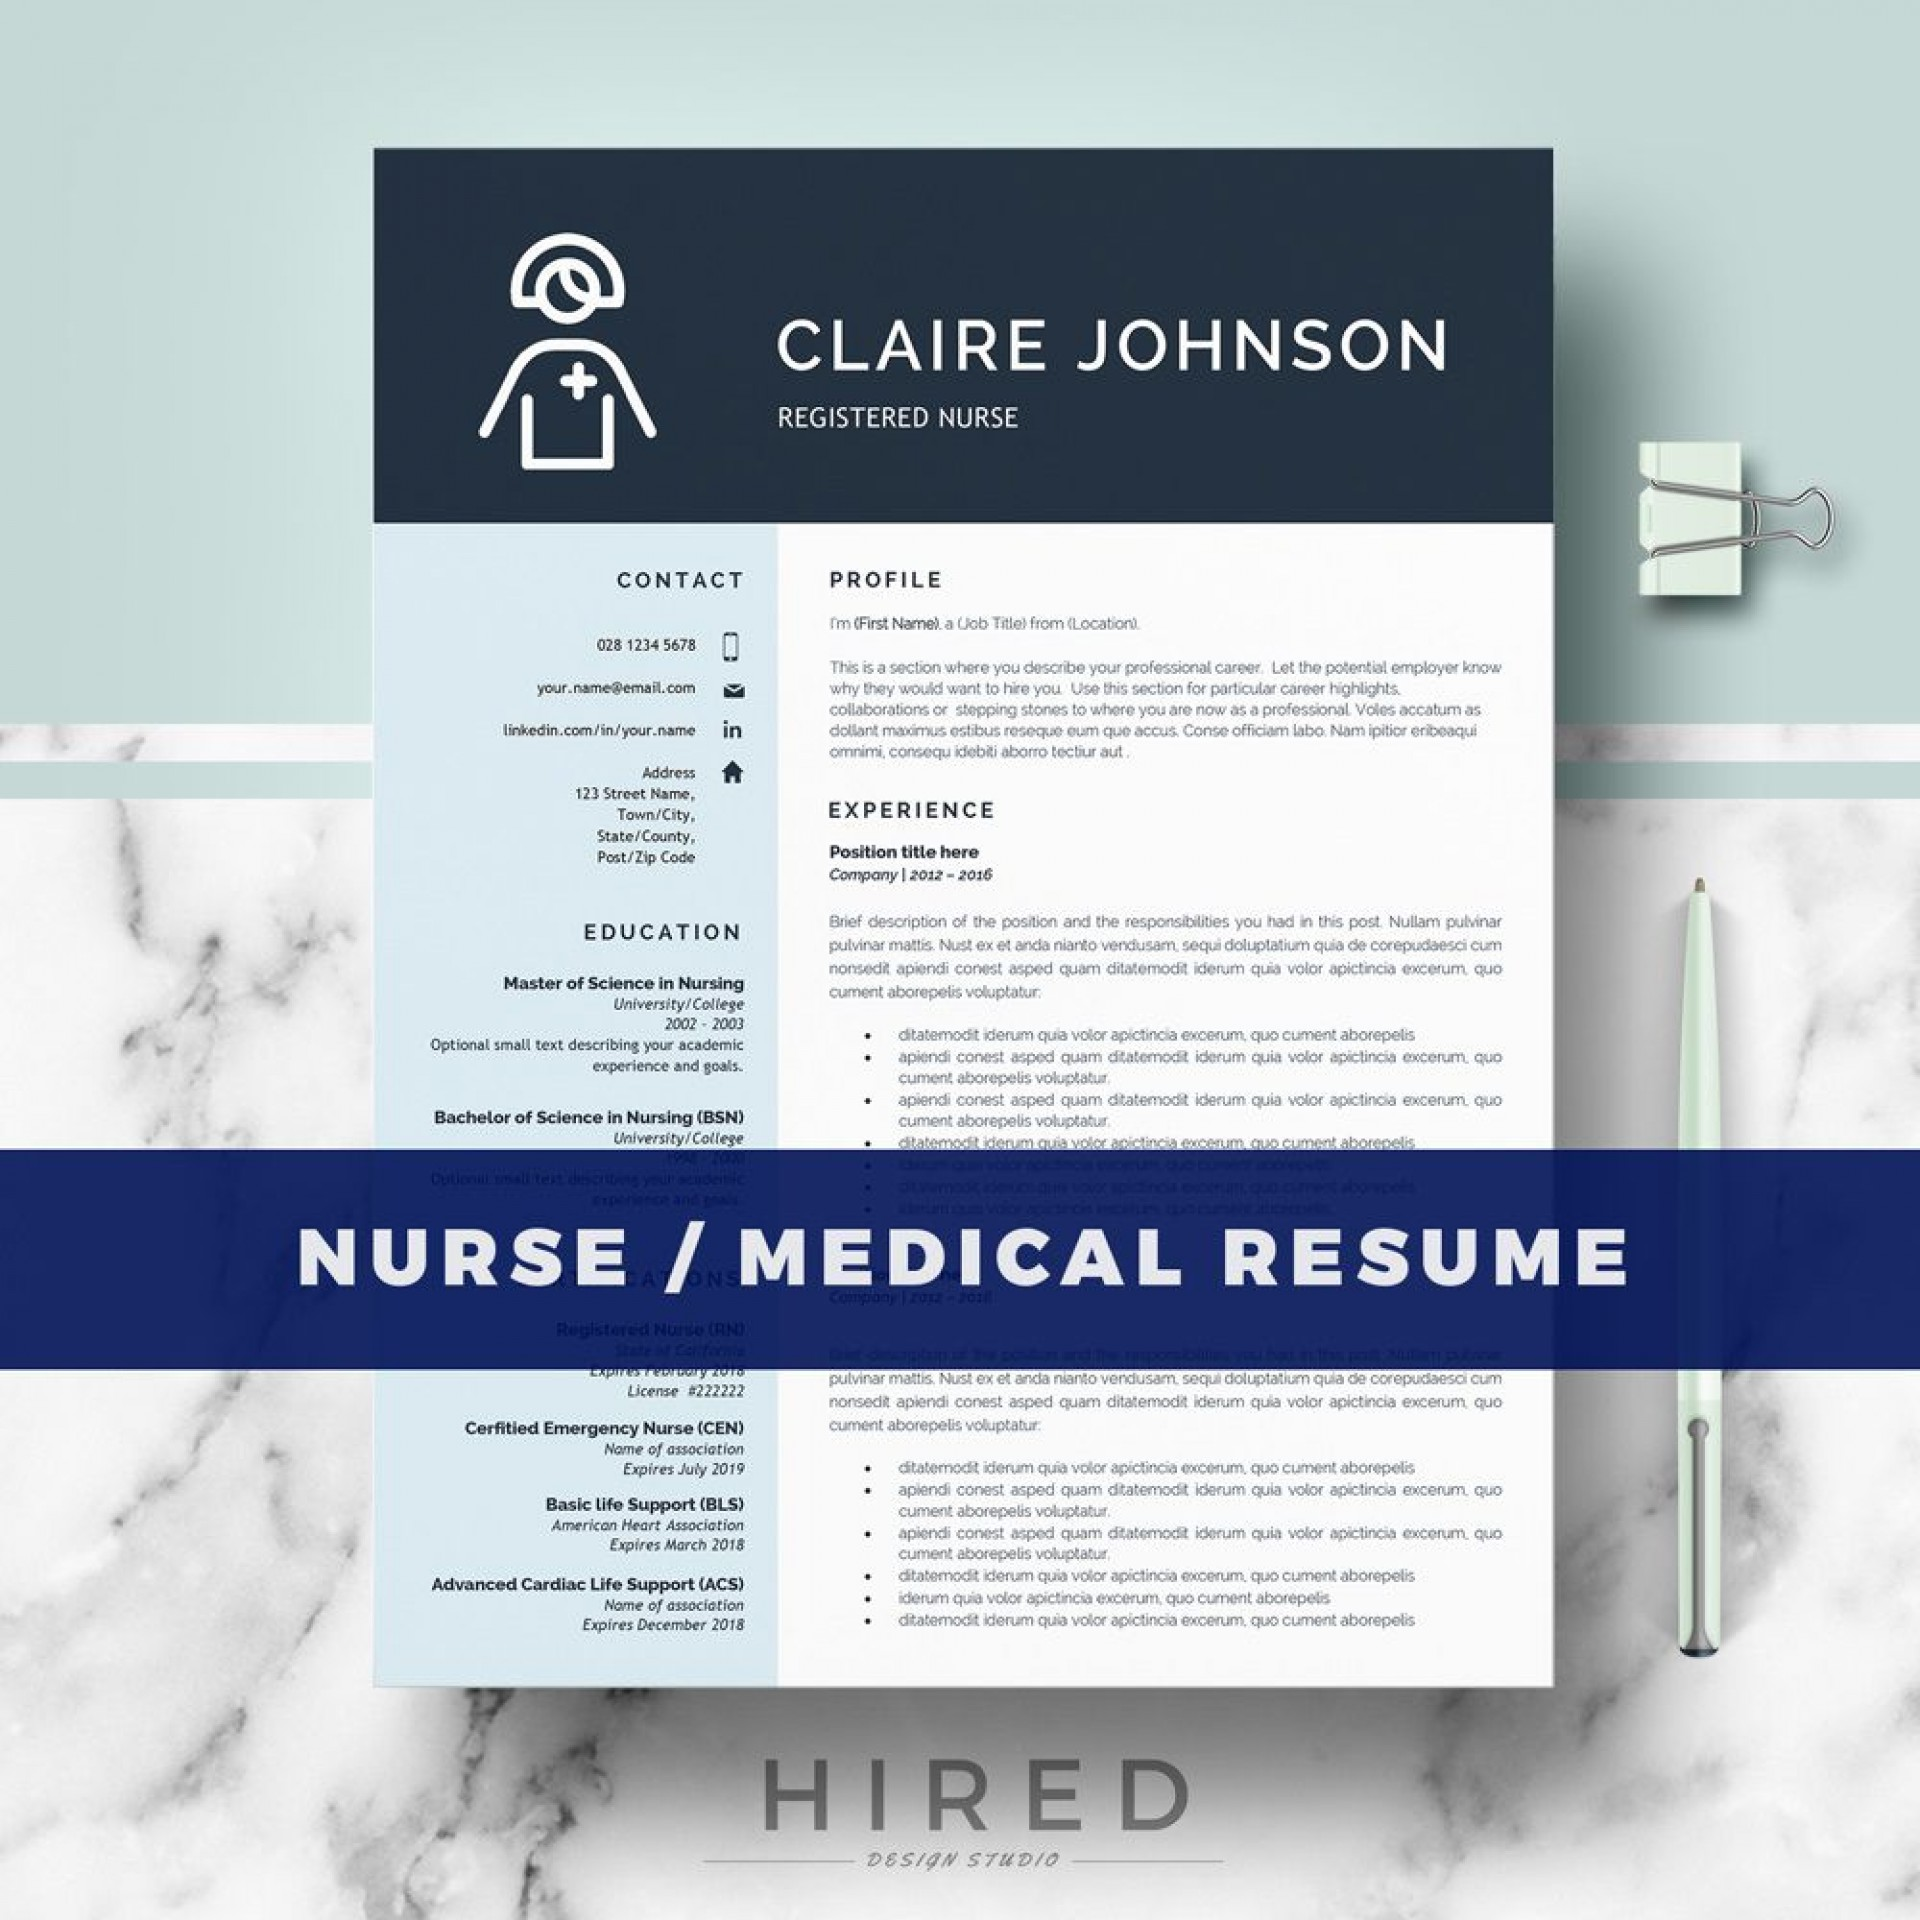 002 Awesome Medical Curriculum Vitae Template Highest Clarity  Templates Word Sample Student1920